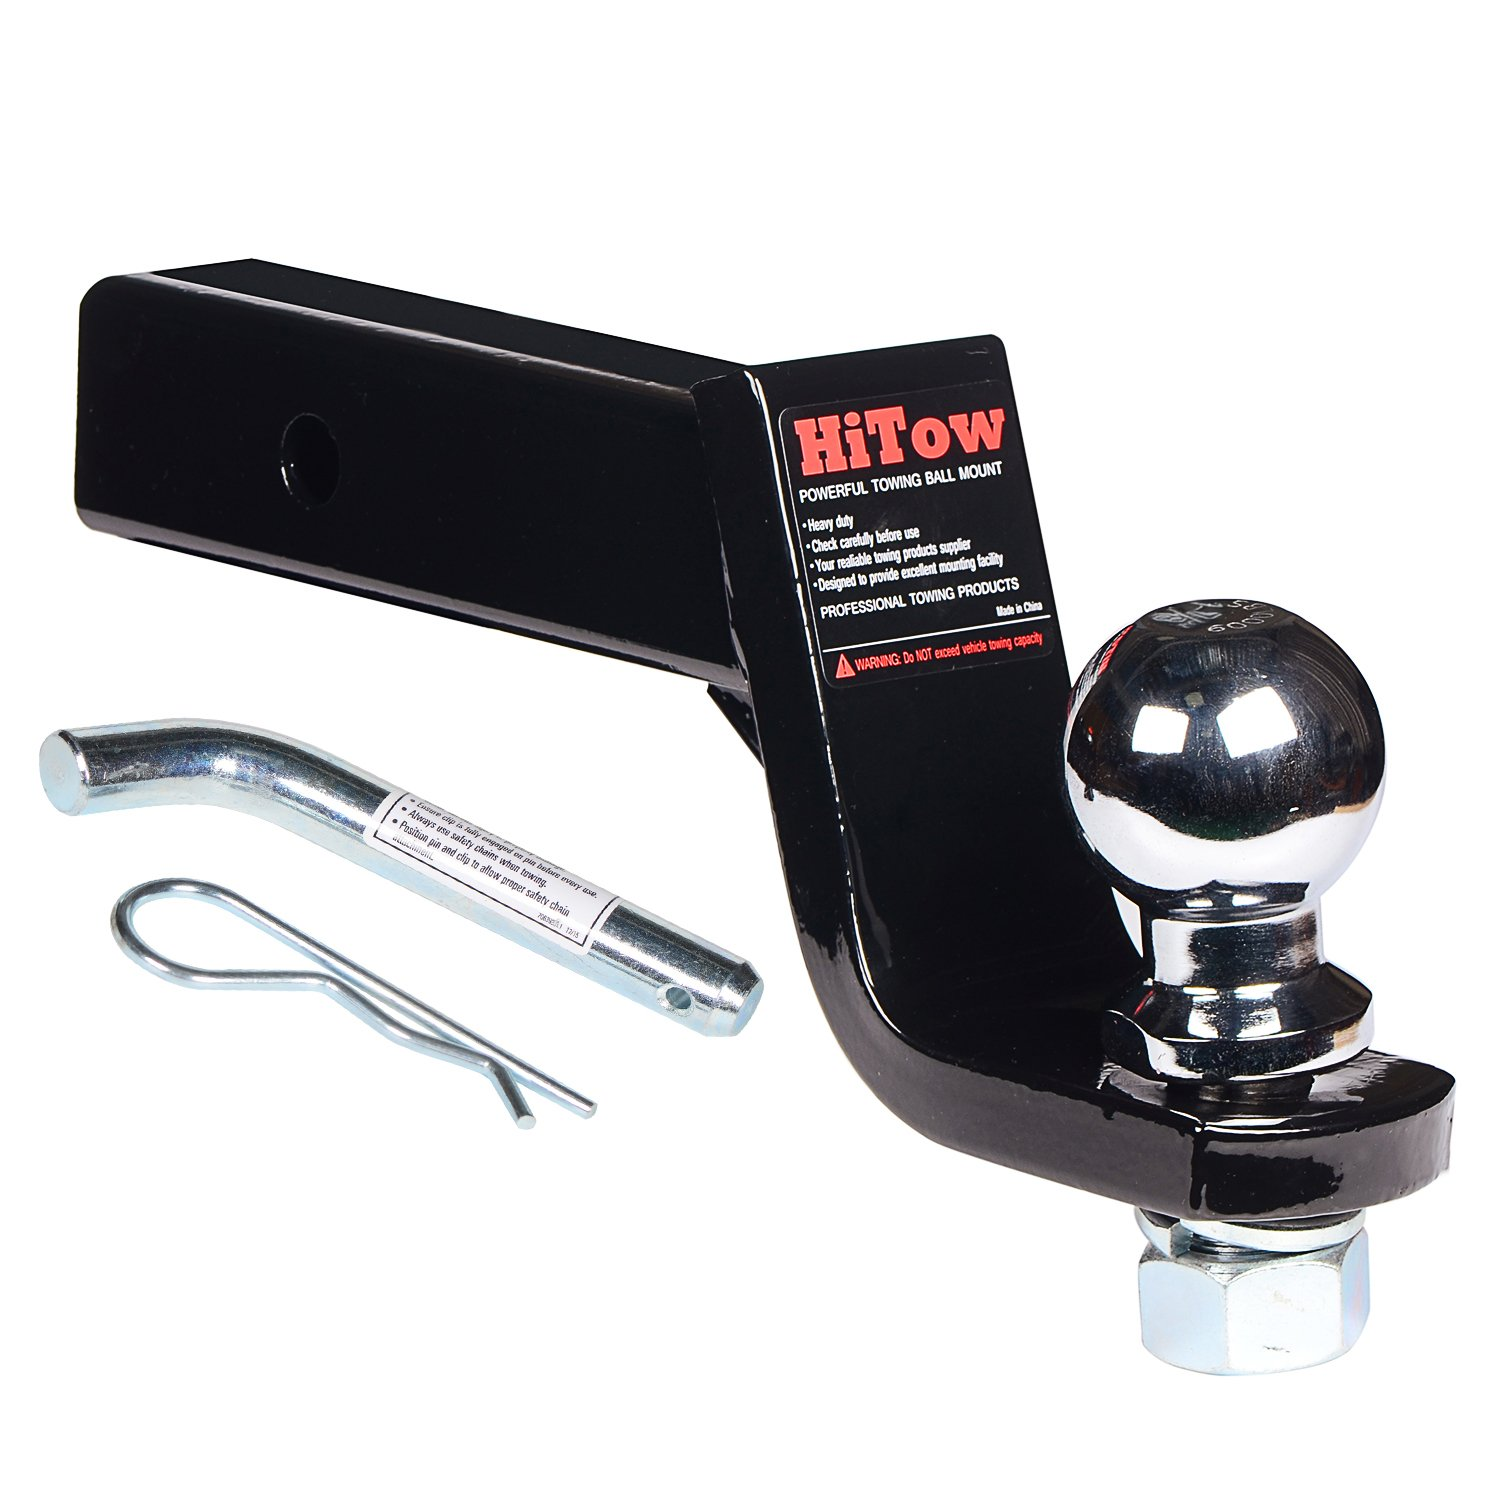 HiTow Trailer Hitch Loaded Ball Mount Class II 4'' Drop with 1-7/8'' Hitch Ball & 5/8'' Pin Kit (GTW 3,500 lbs) by HiTow